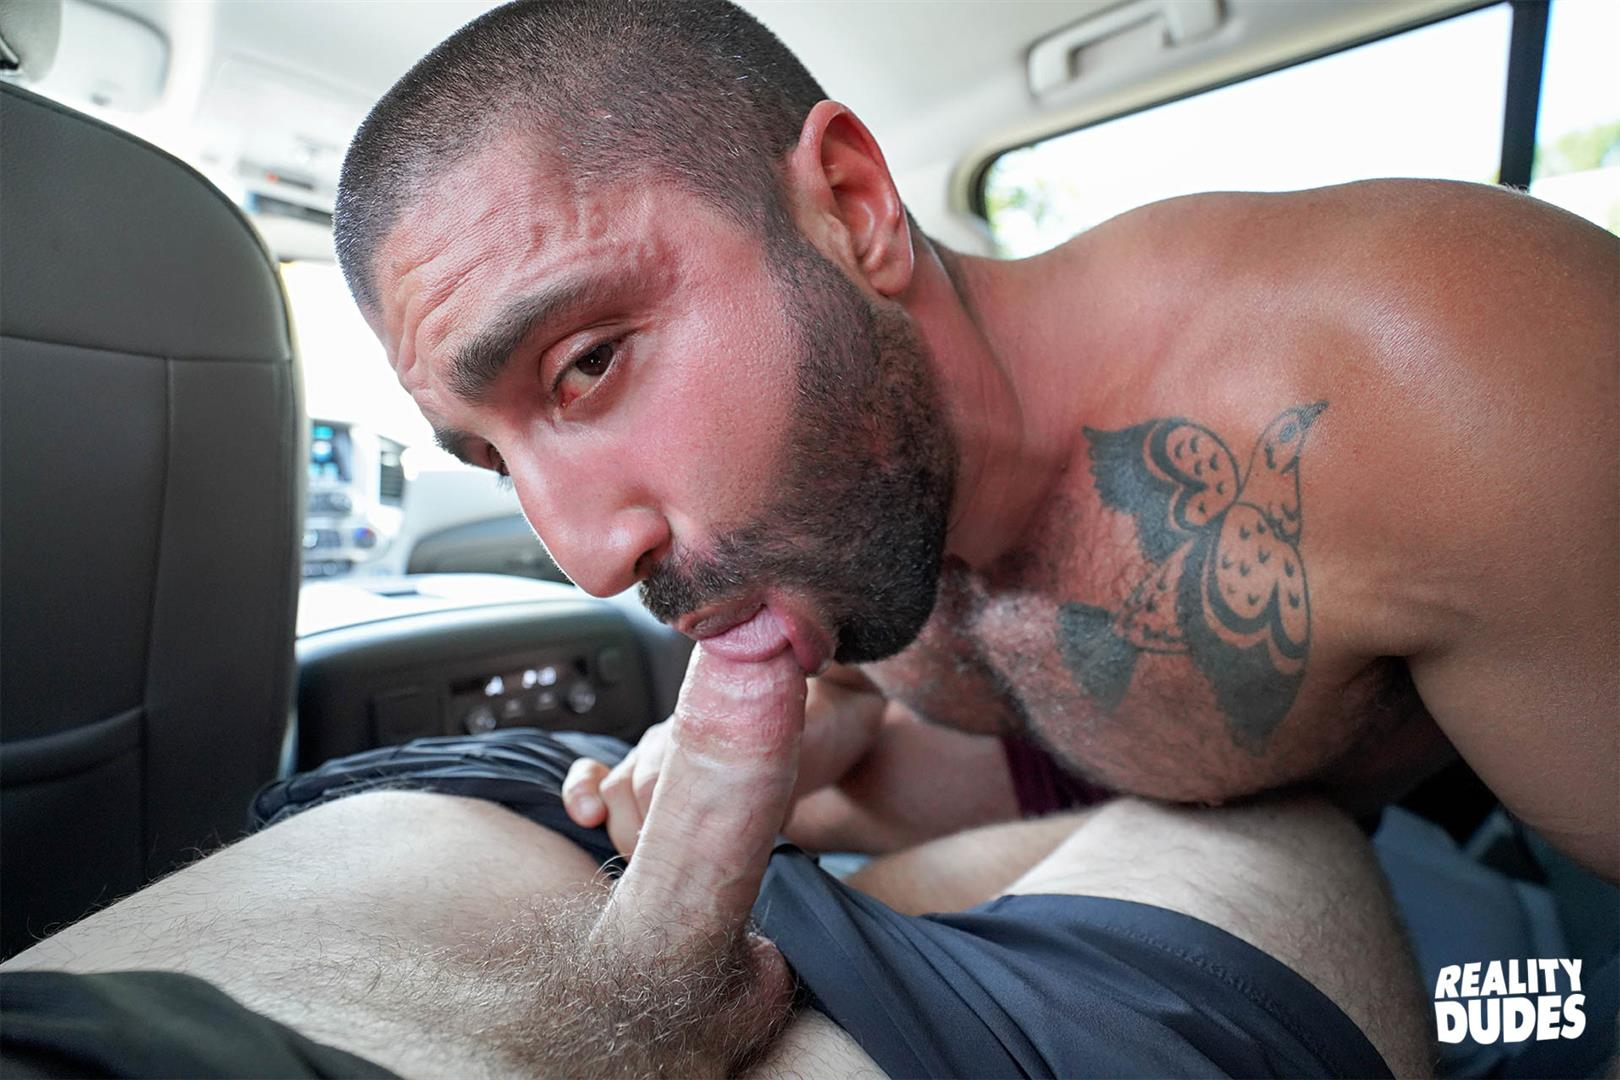 Reality-Dudes-Sharok-Straight-Guy-Gets-Fucked-In-Hairy-Ass-For-Cash-11 Paying A Straight Muscle Hunk To Let Me Fuck His Hairy Ass